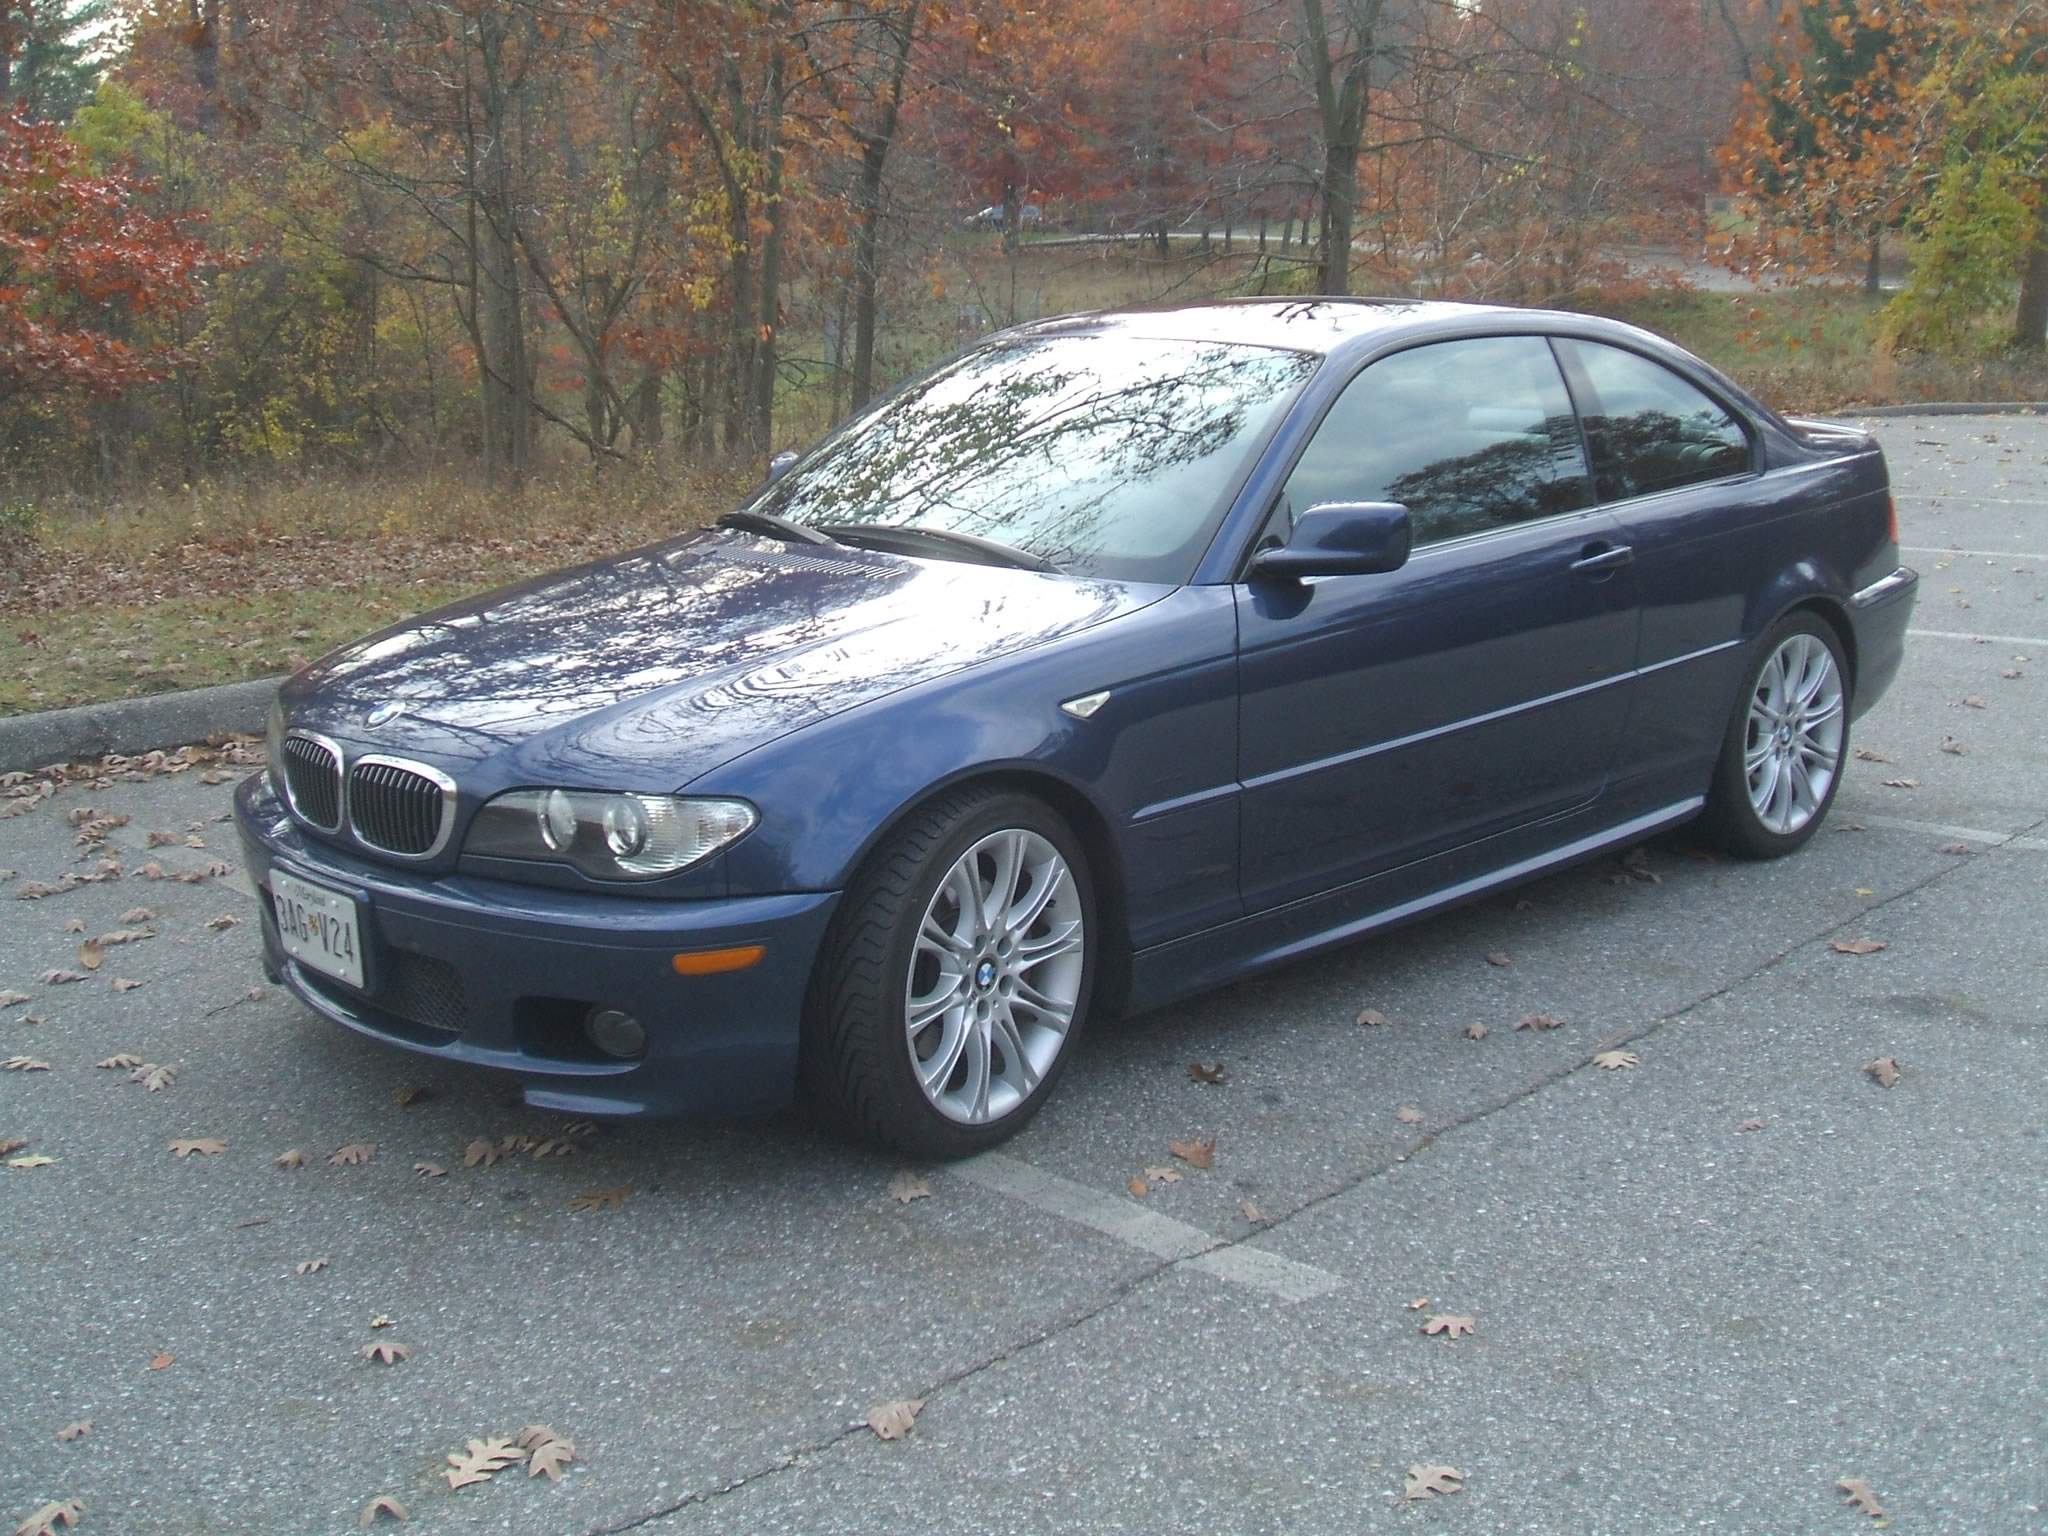 BMW 330Ci 2005: Review, Amazing Pictures and Images – Look at the car